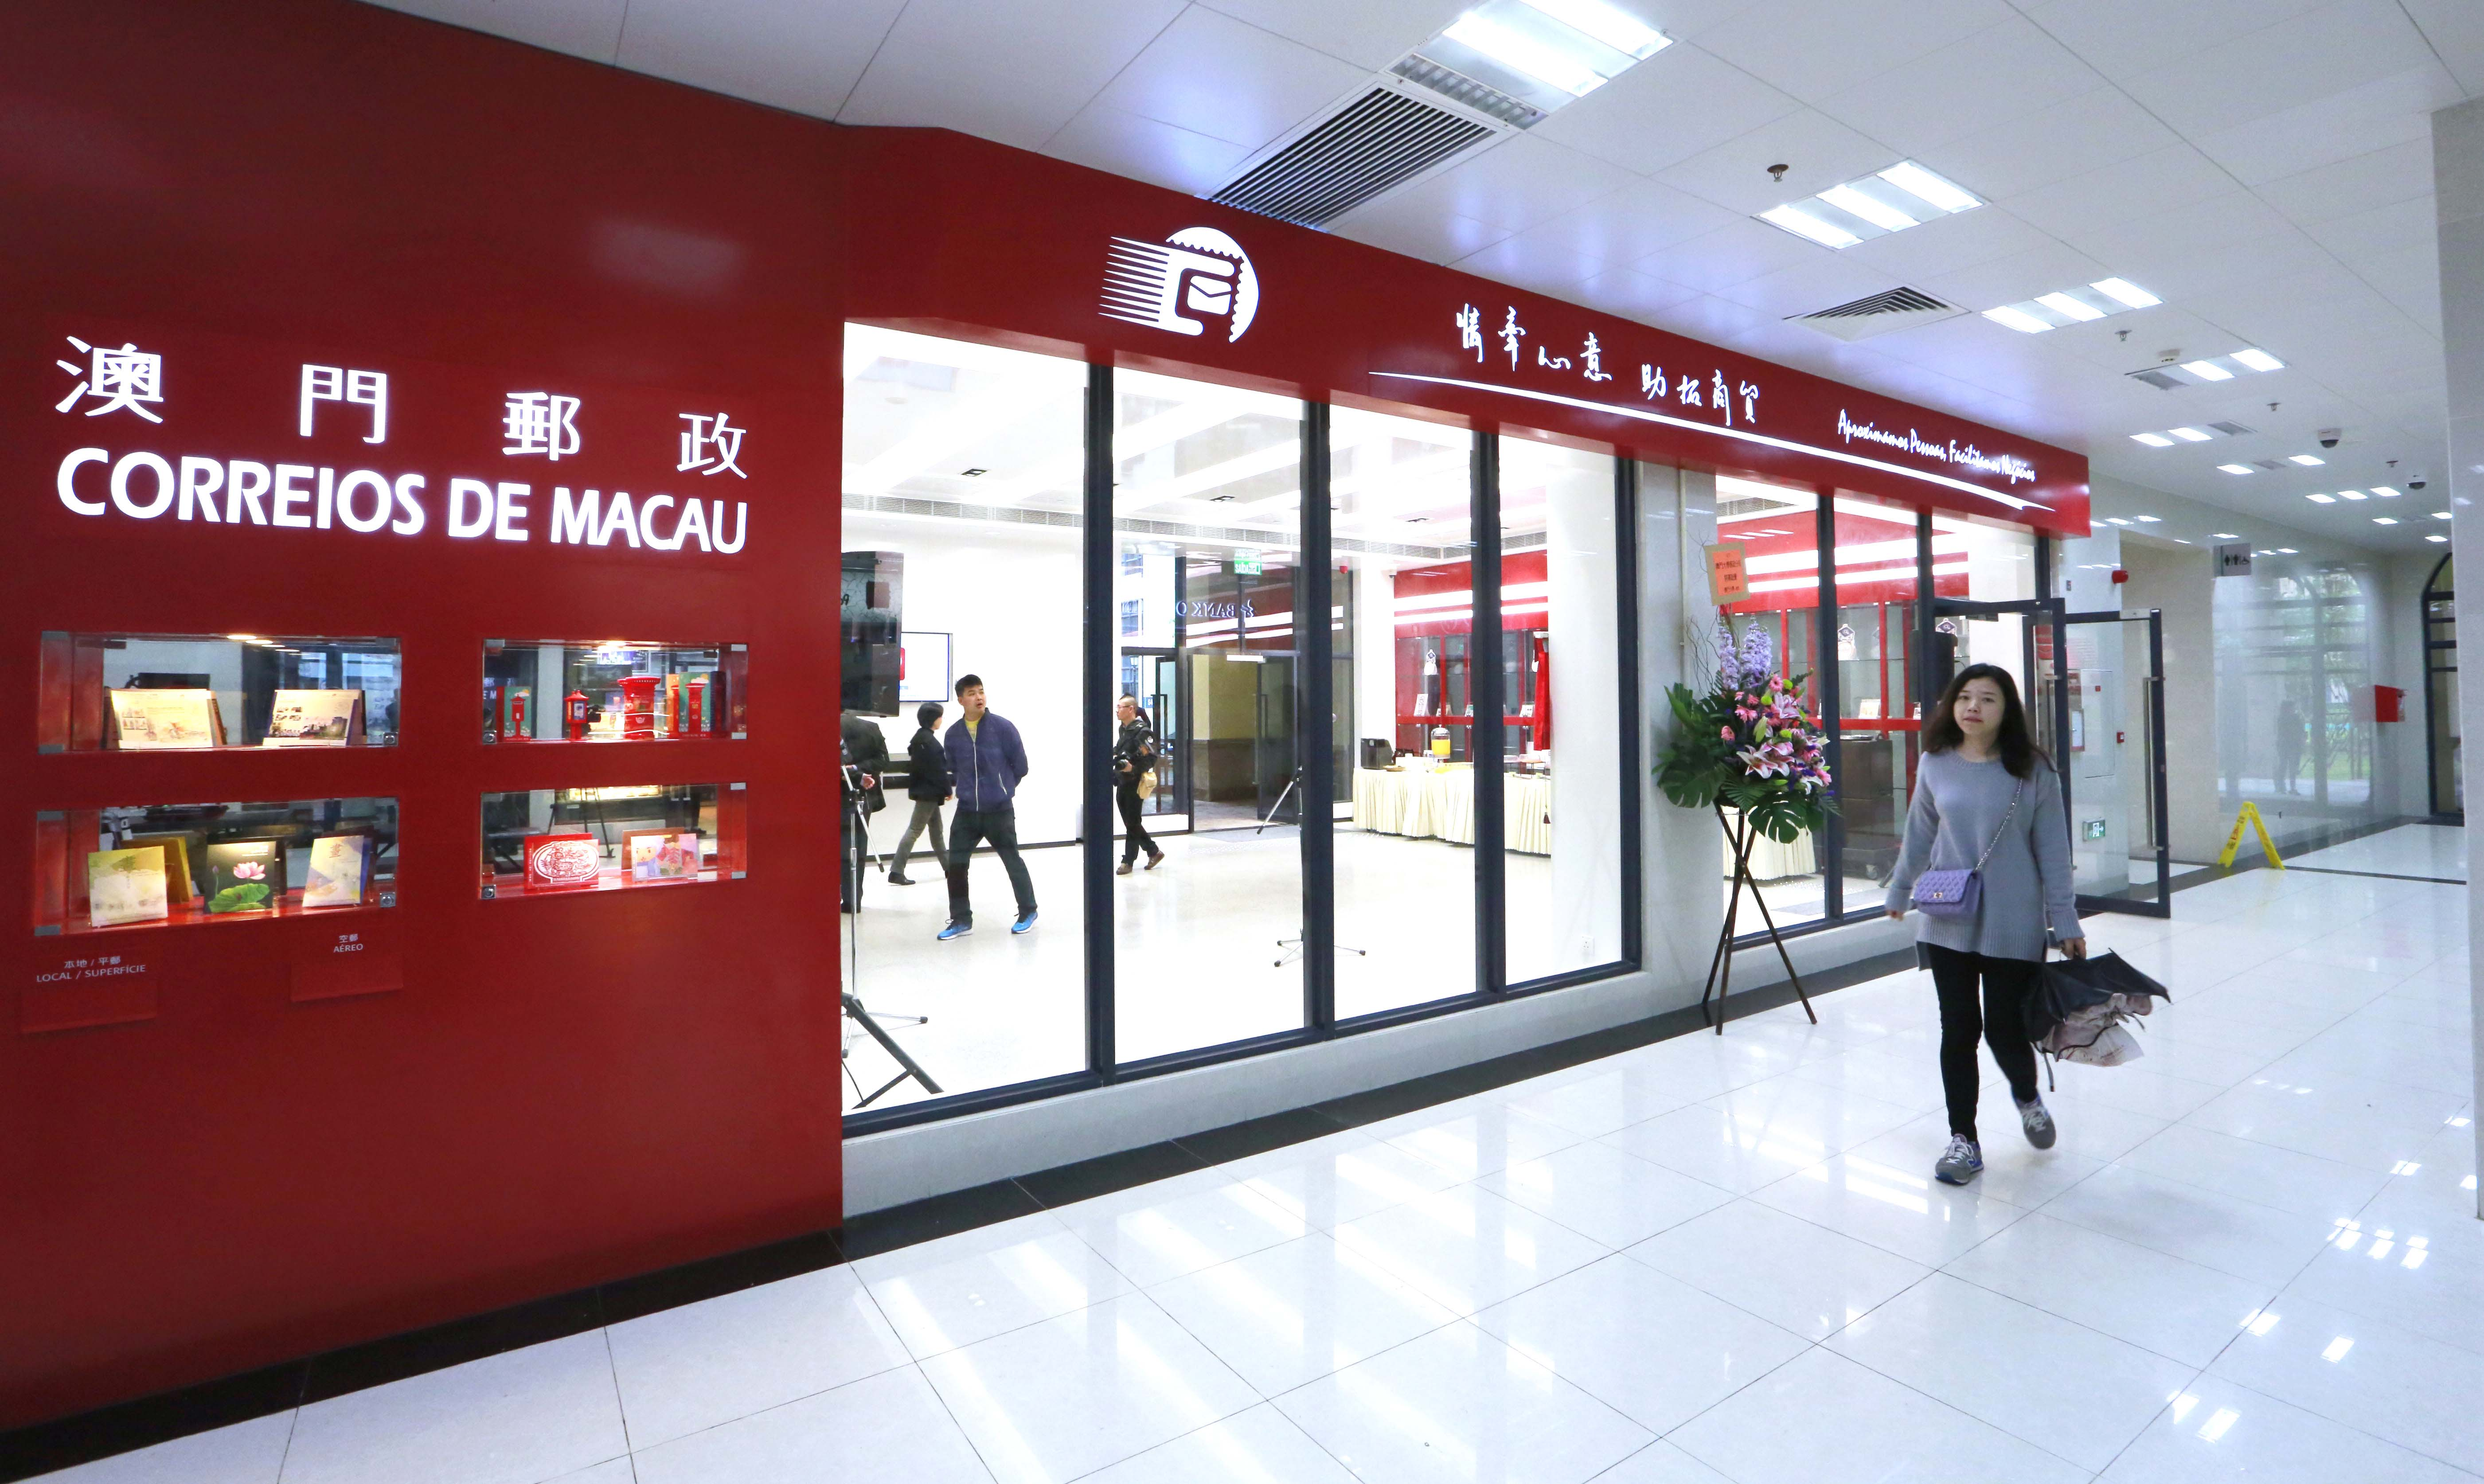 The Macao Post's UM branch is located on the ground floor of the University Mall